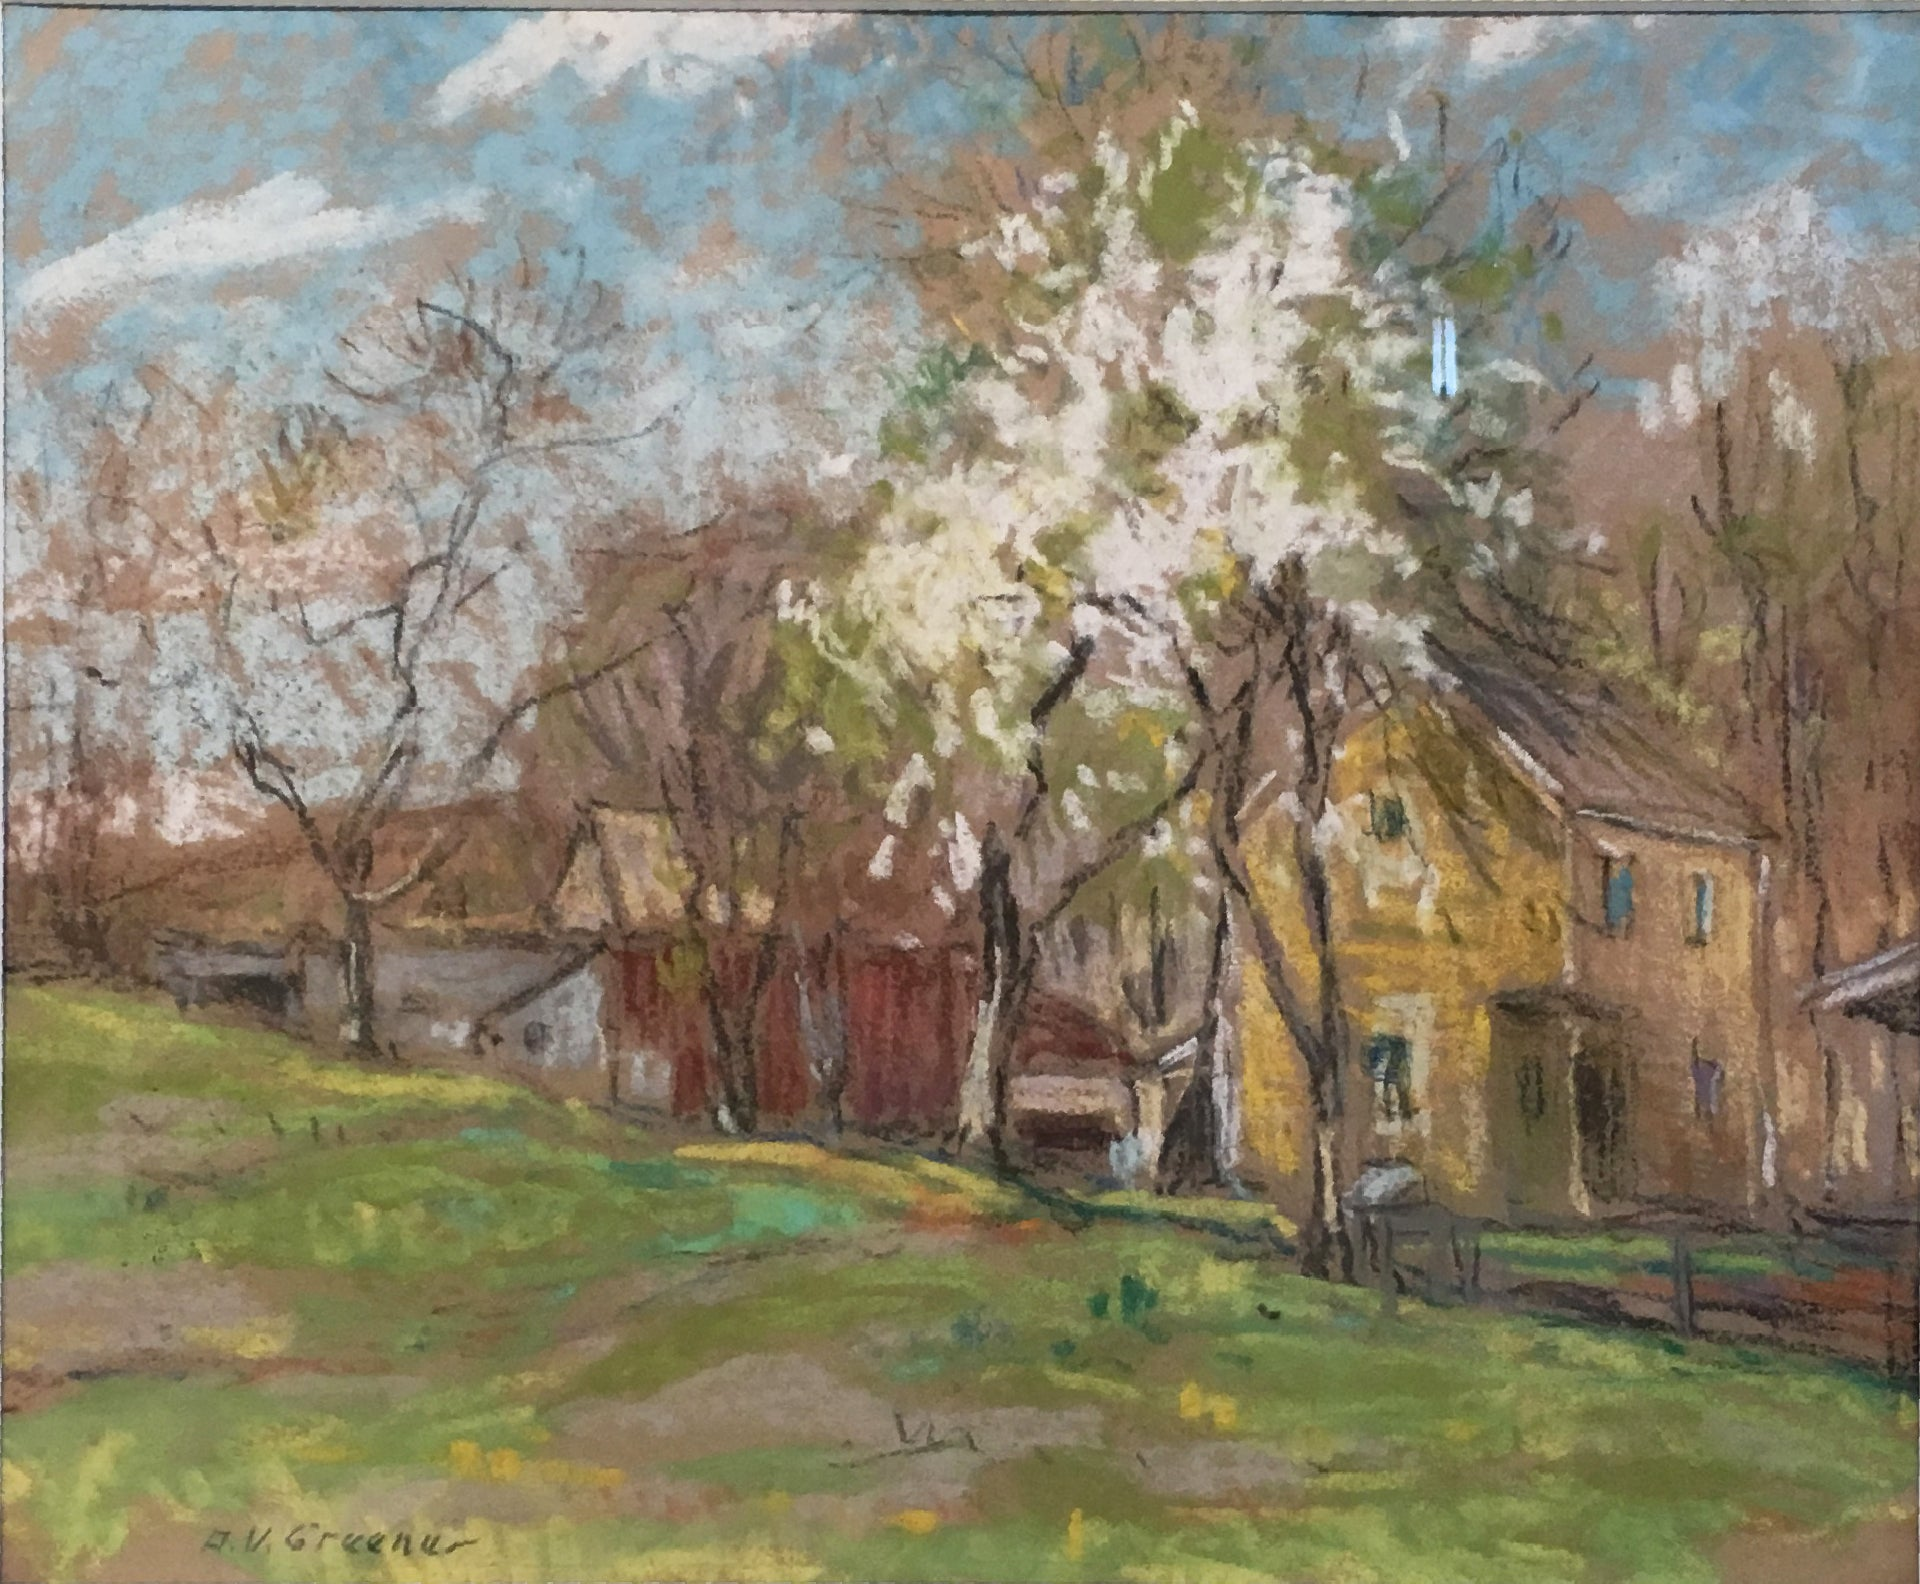 Landscape with Houses and White Tree, American Impressionist, Pastel on Paper